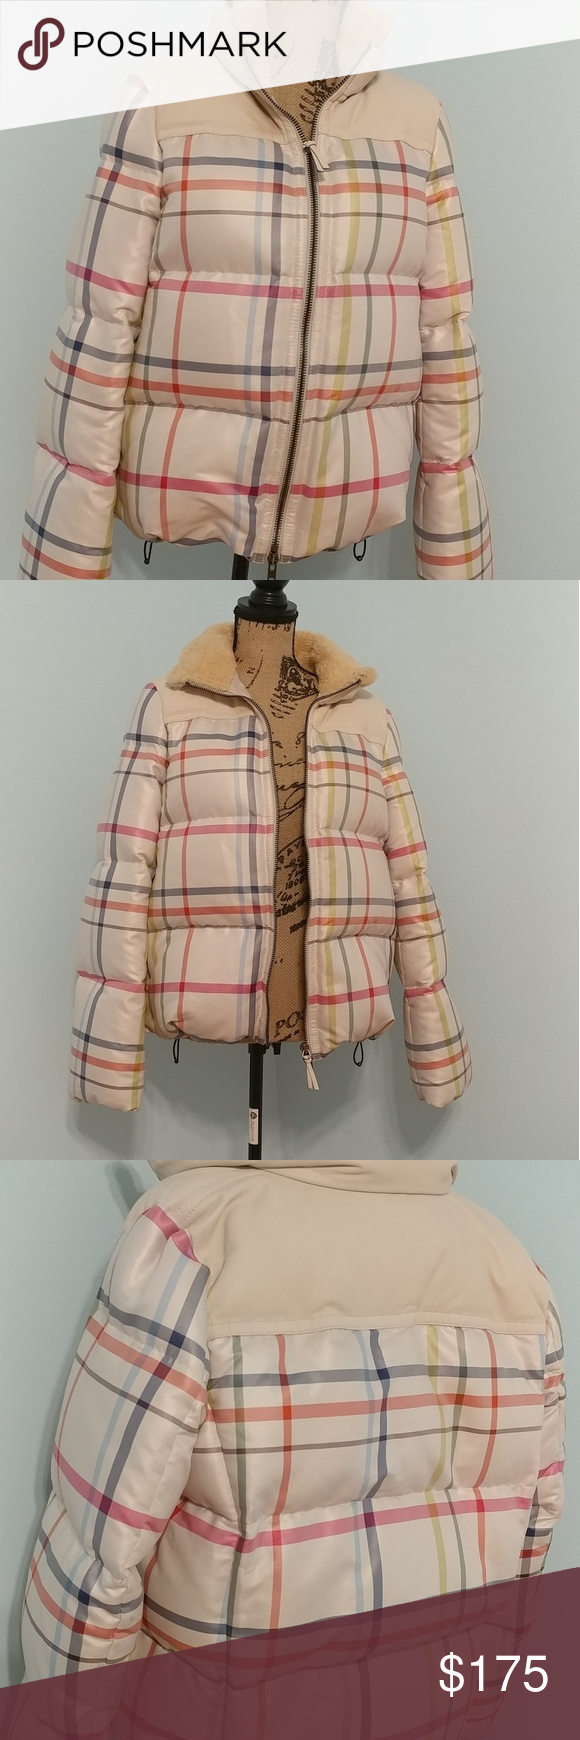 Large Coach Puffer Jacket Leather Trimmed Clothes Design Puffer Jackets Leather Jacket [ 1740 x 580 Pixel ]